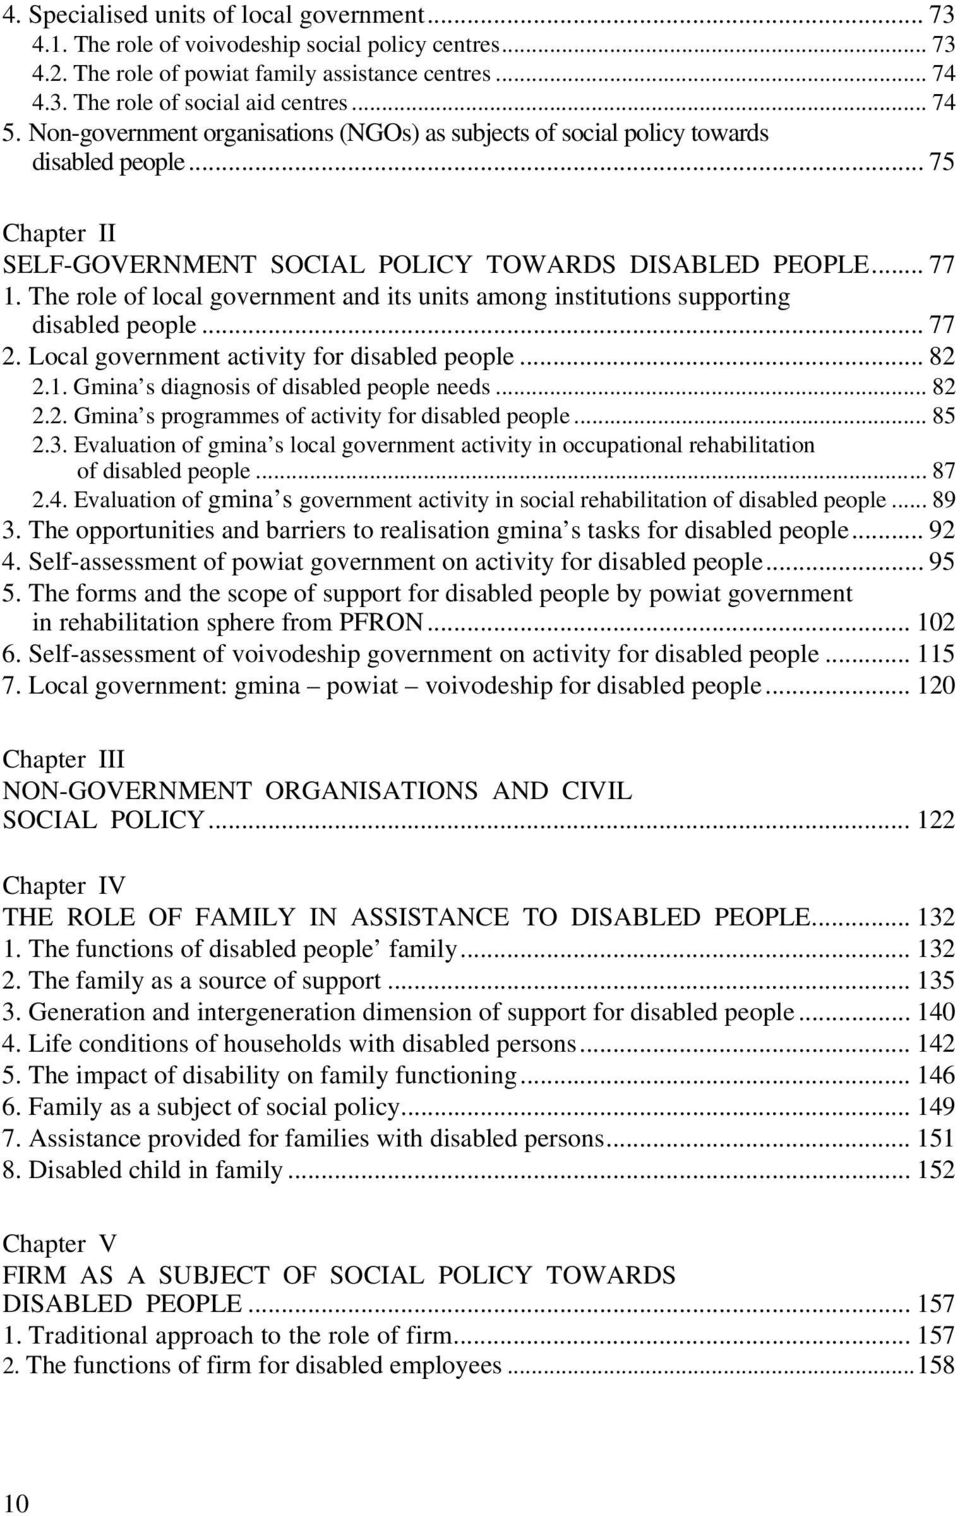 The role of local government and its units among institutions supporting disabled people... 77 2. Local government activity for disabled people... 82 2.1. Gmina s diagnosis of disabled people needs.